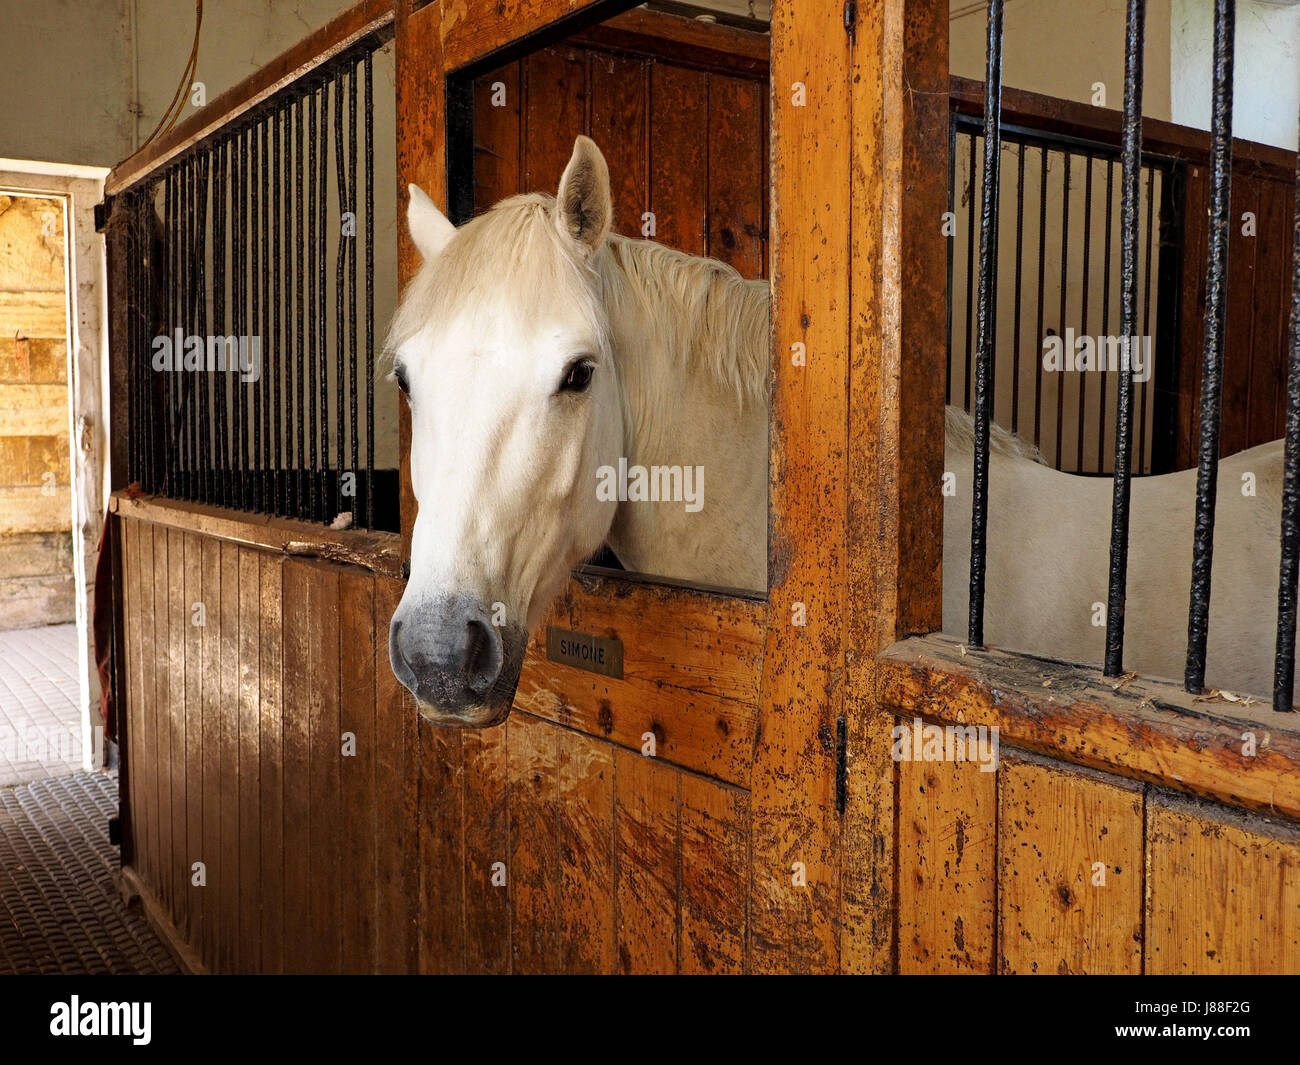 Handsome White Horse Looking At Camera In Old Wooden Horse Stables Stock Photo Alamy